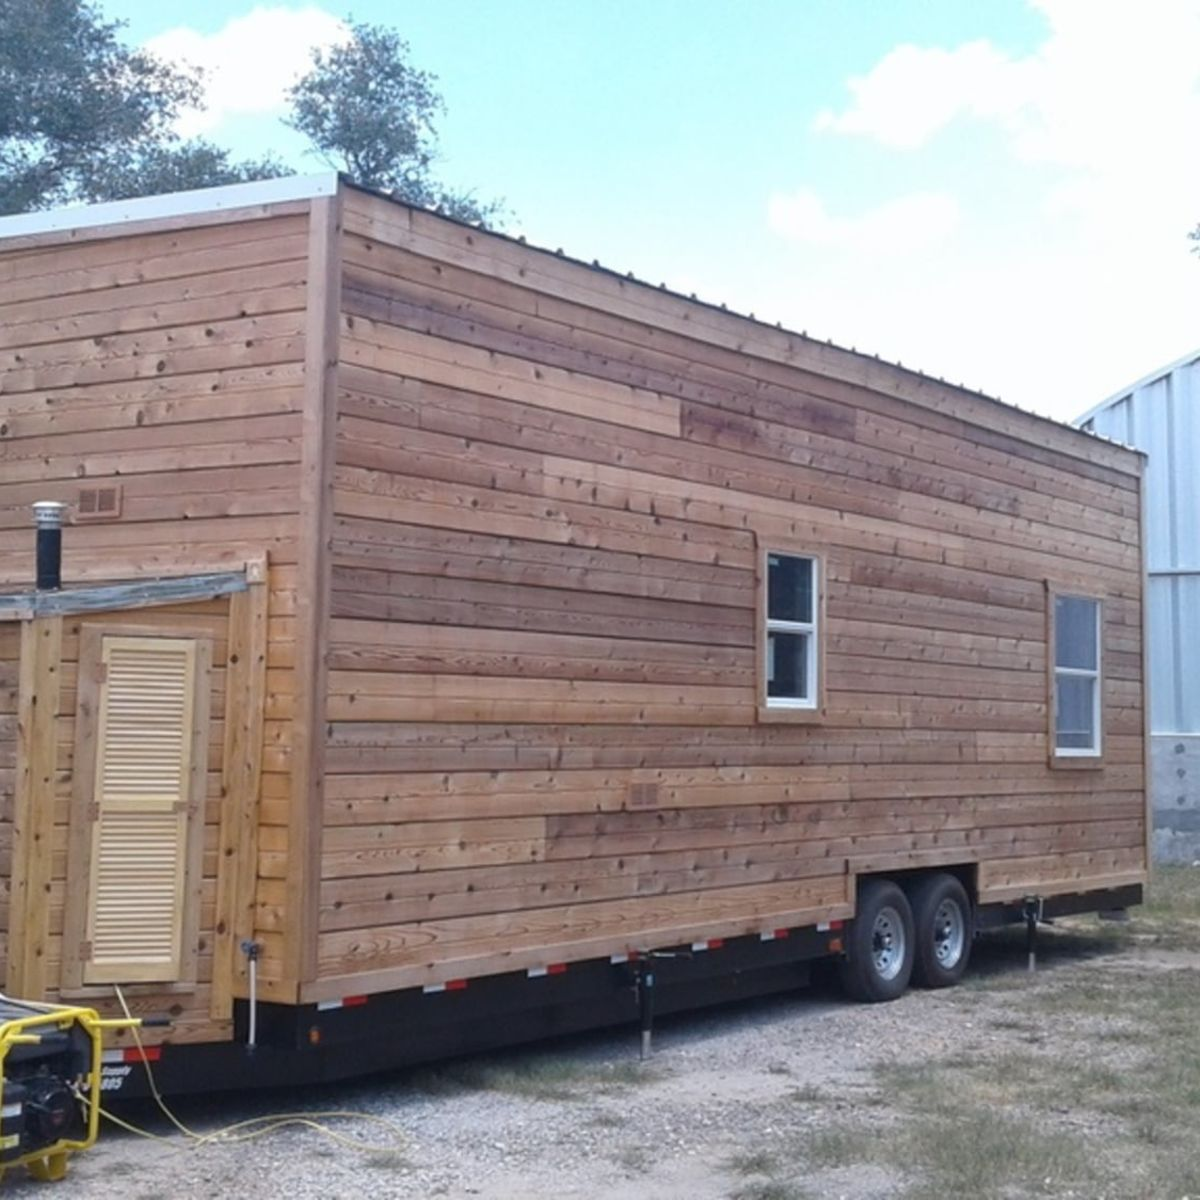 Couches For Sale Houston: Tiny House For Sale In Houston, Texas